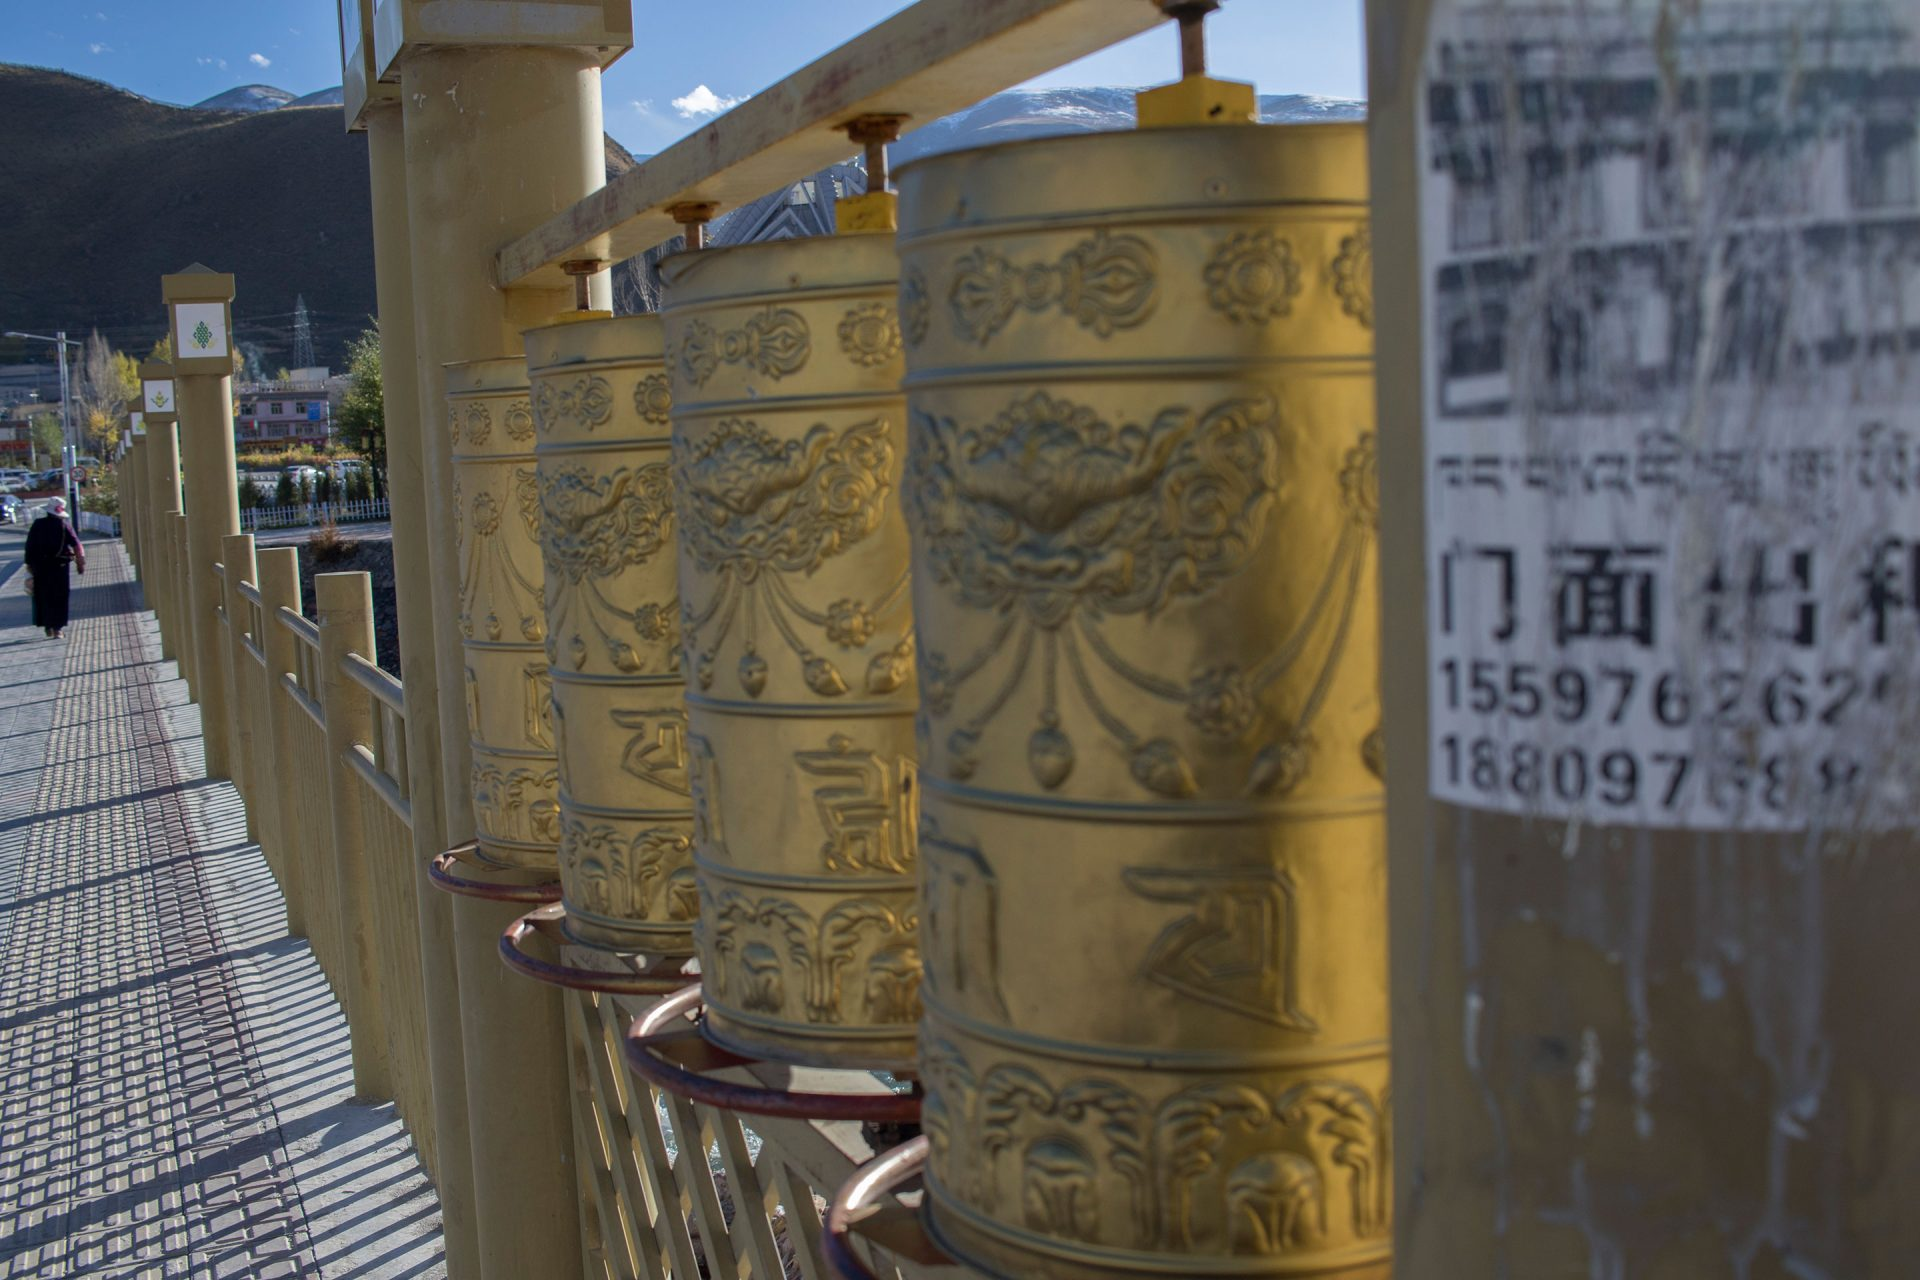 Prayer wheels in Yushu